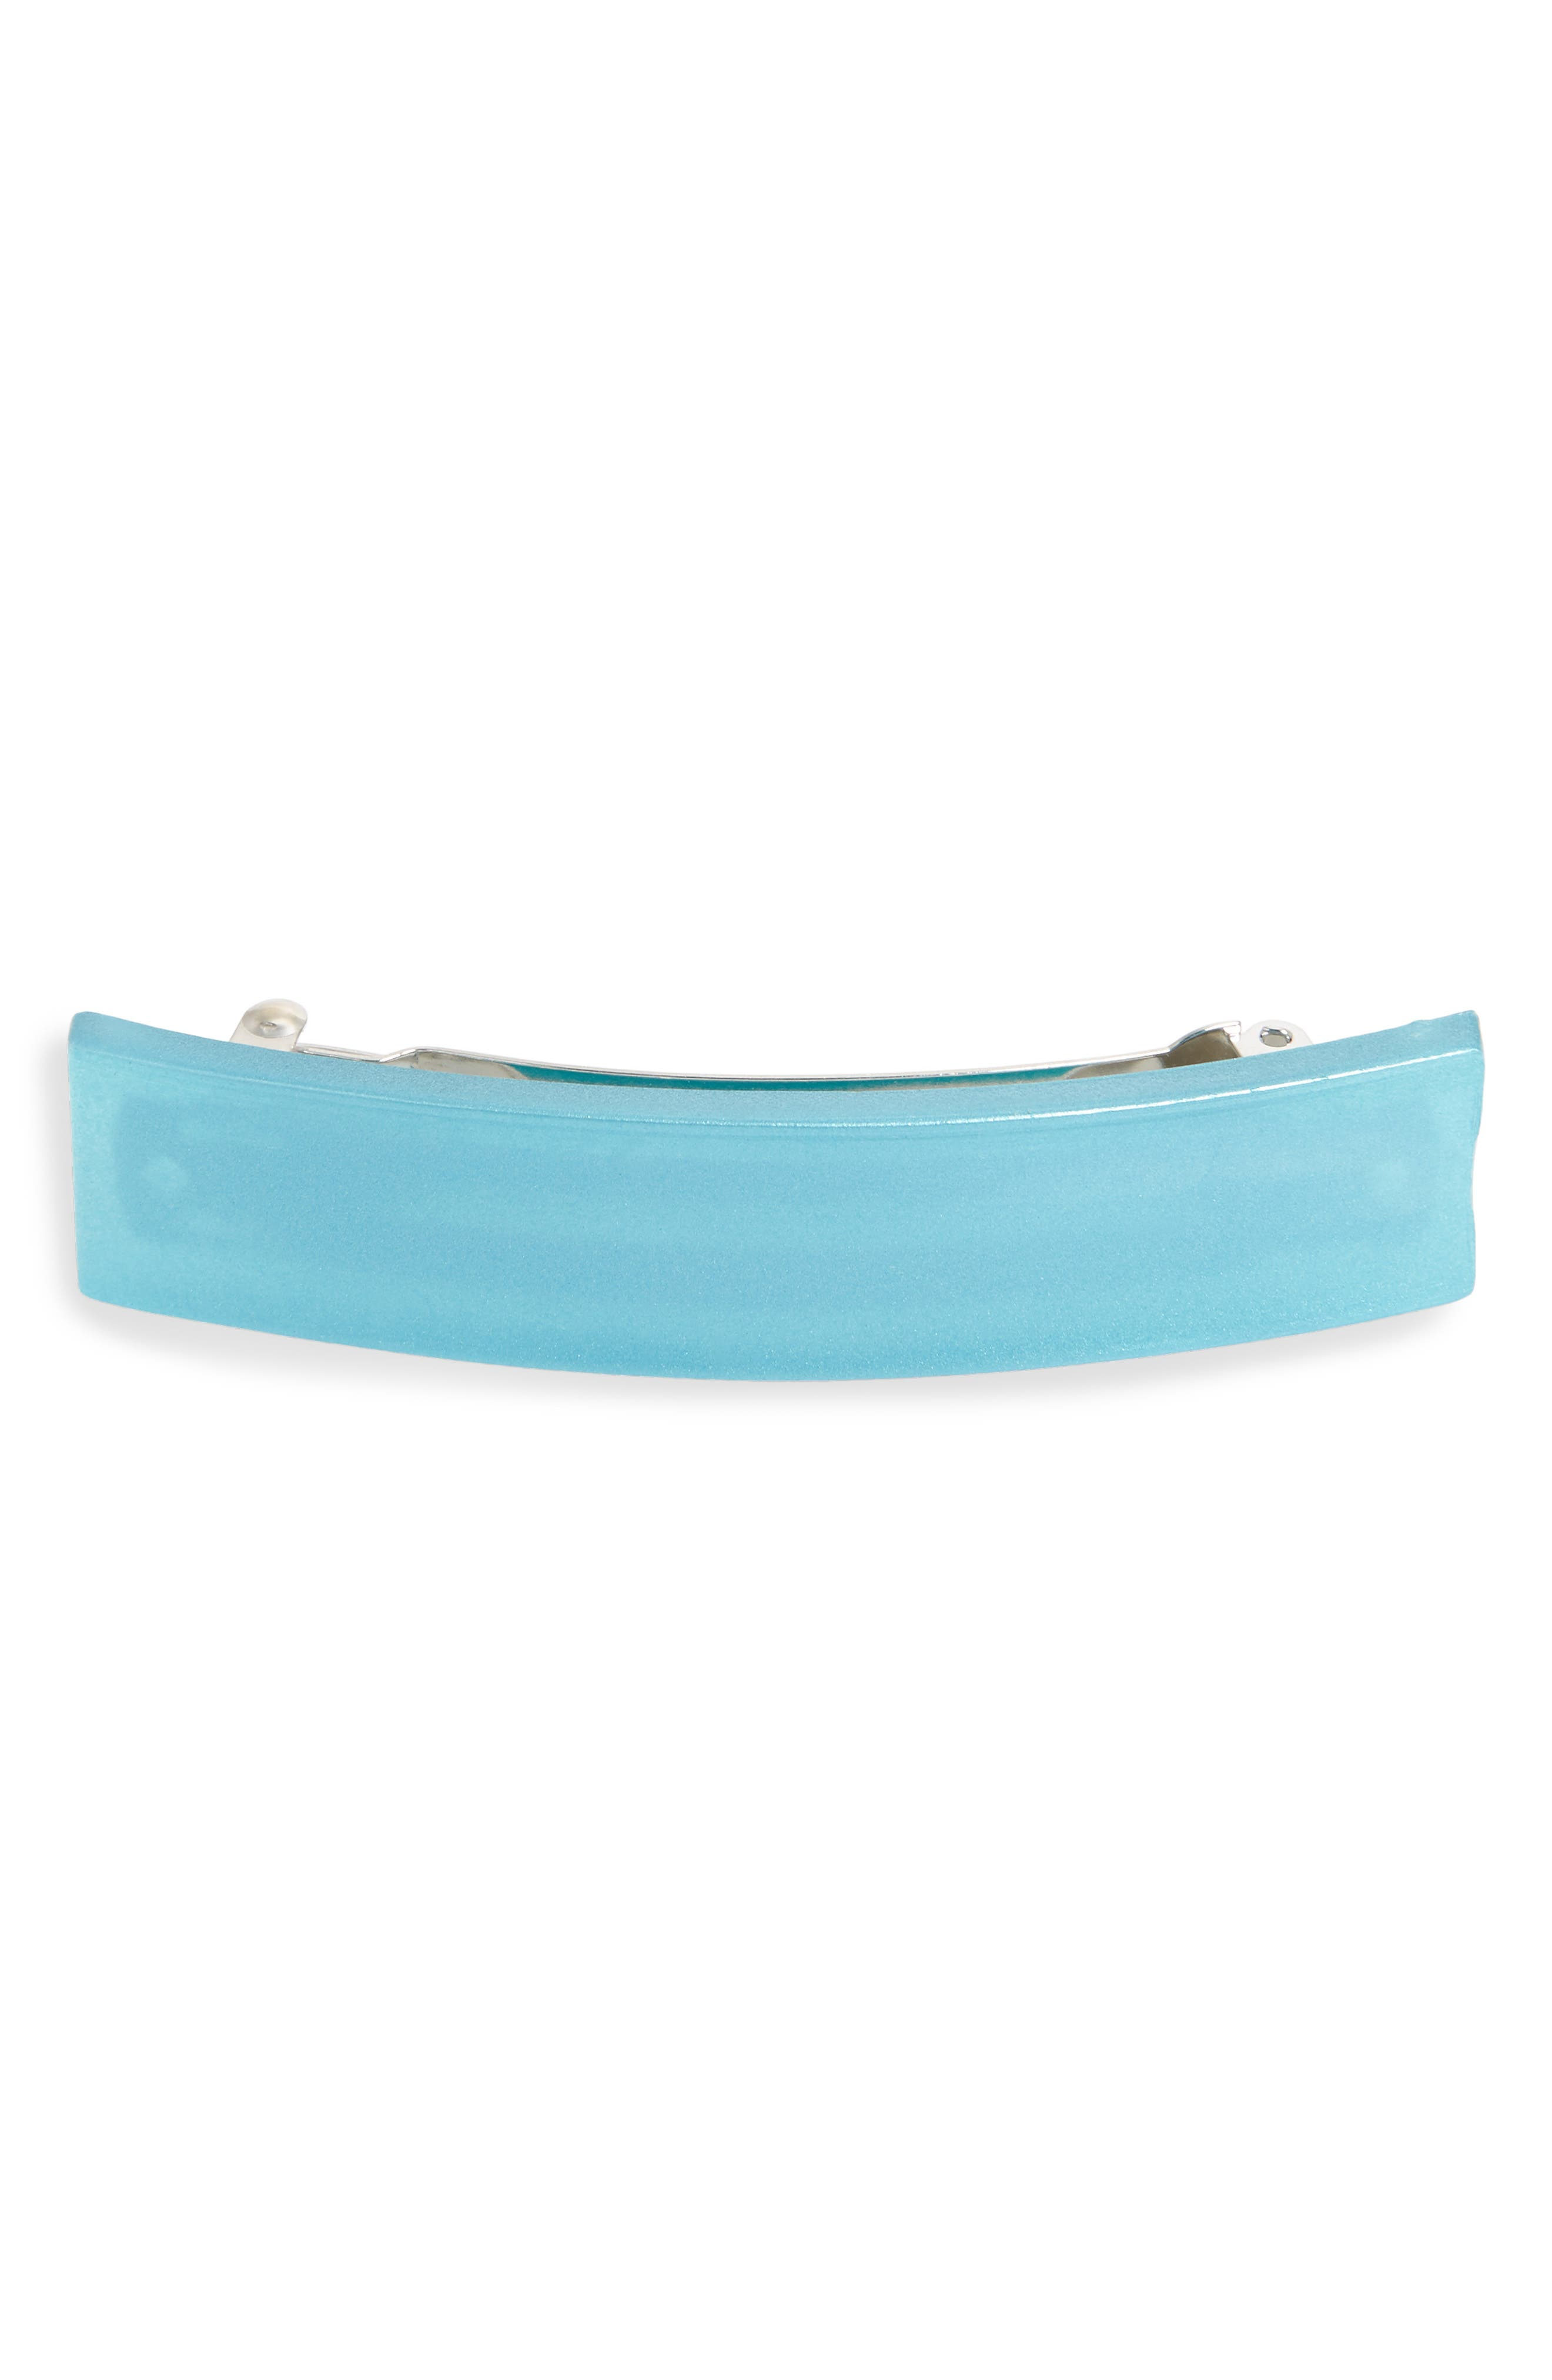 FRANCE LUXE Grooved Rectangle Barrette in Aqua